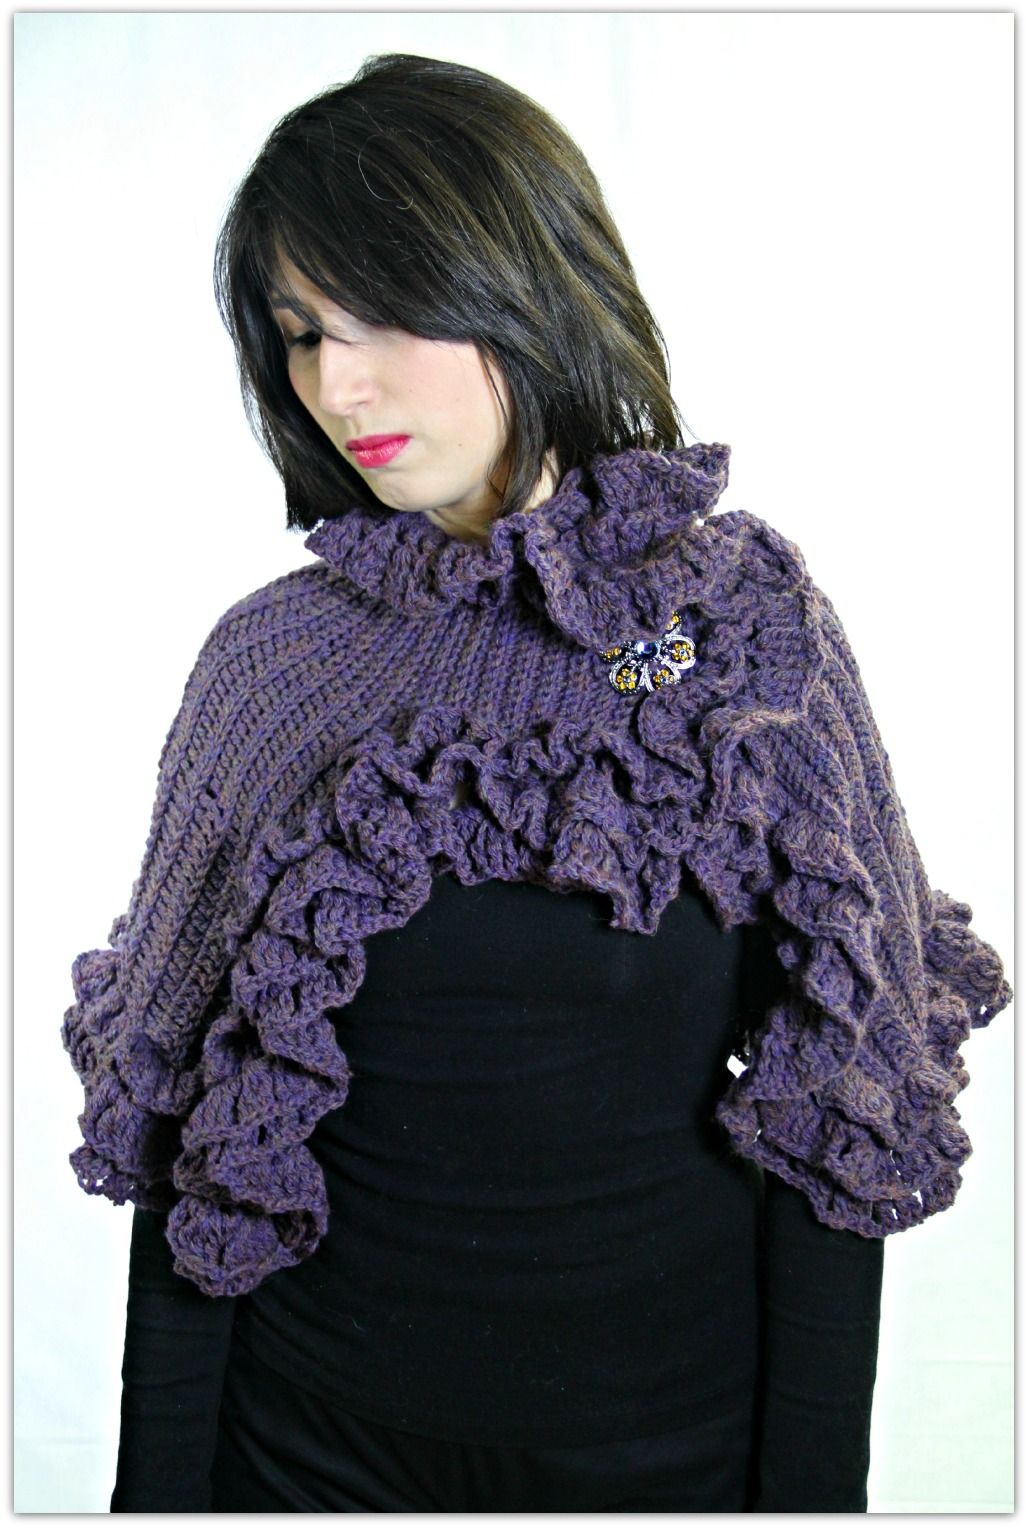 Ruffled Capelet Crochet Pattern: This patterns includes a ...